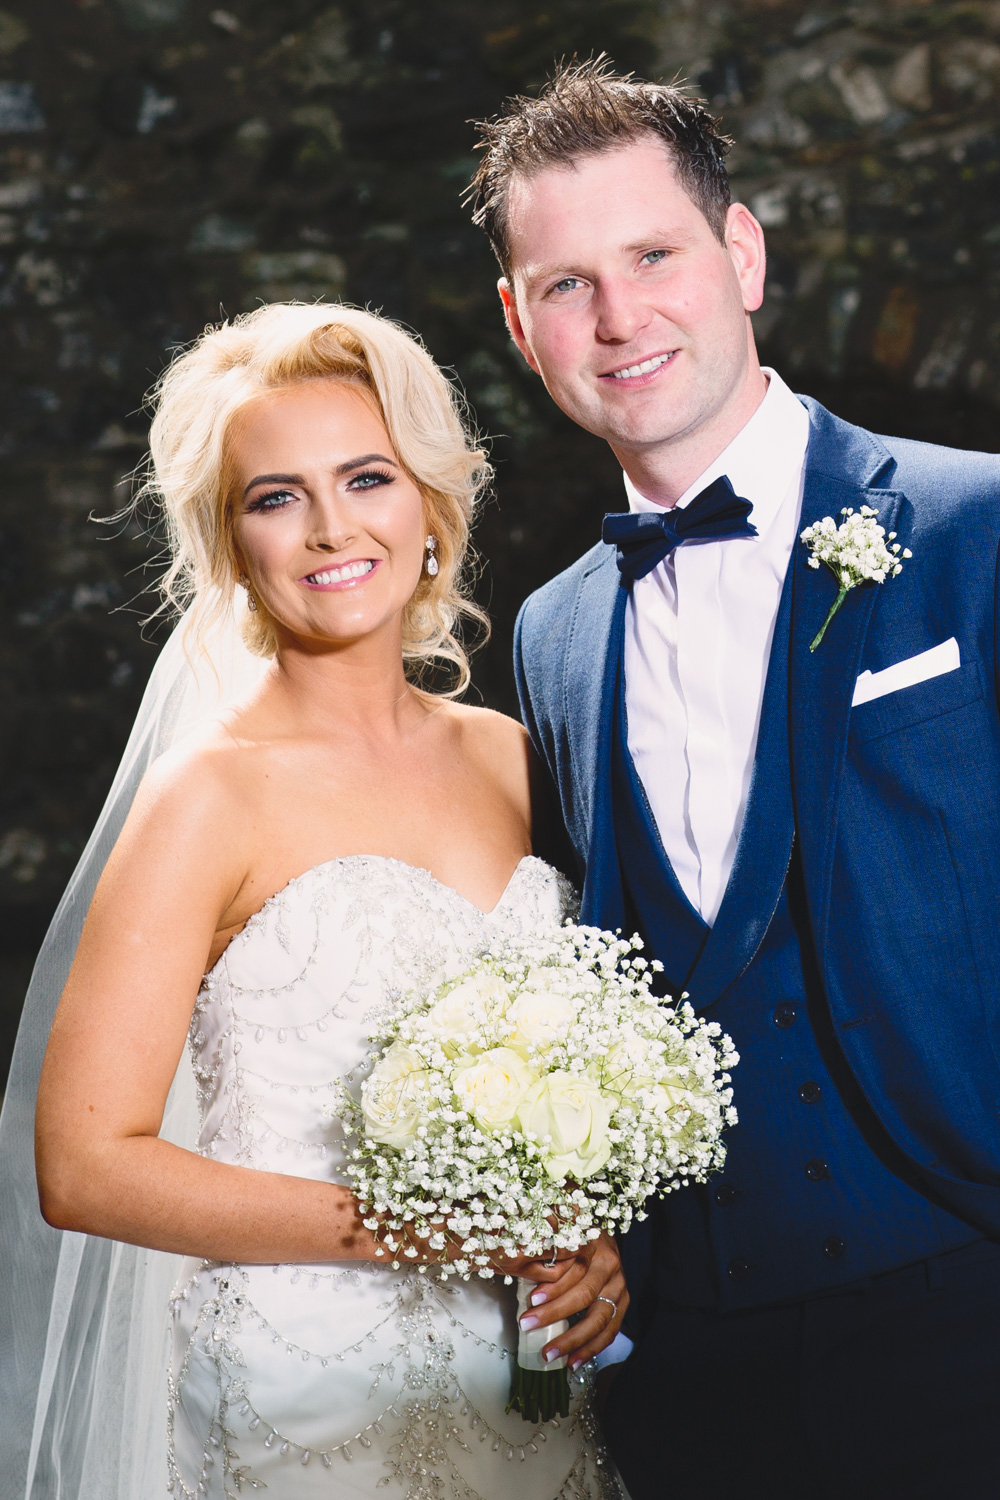 Mark_Barnes_wedding_photographer_Northern_Ireland_Wedding_photography_Carlingford_Four_Seasons_Wedding-34.jpg